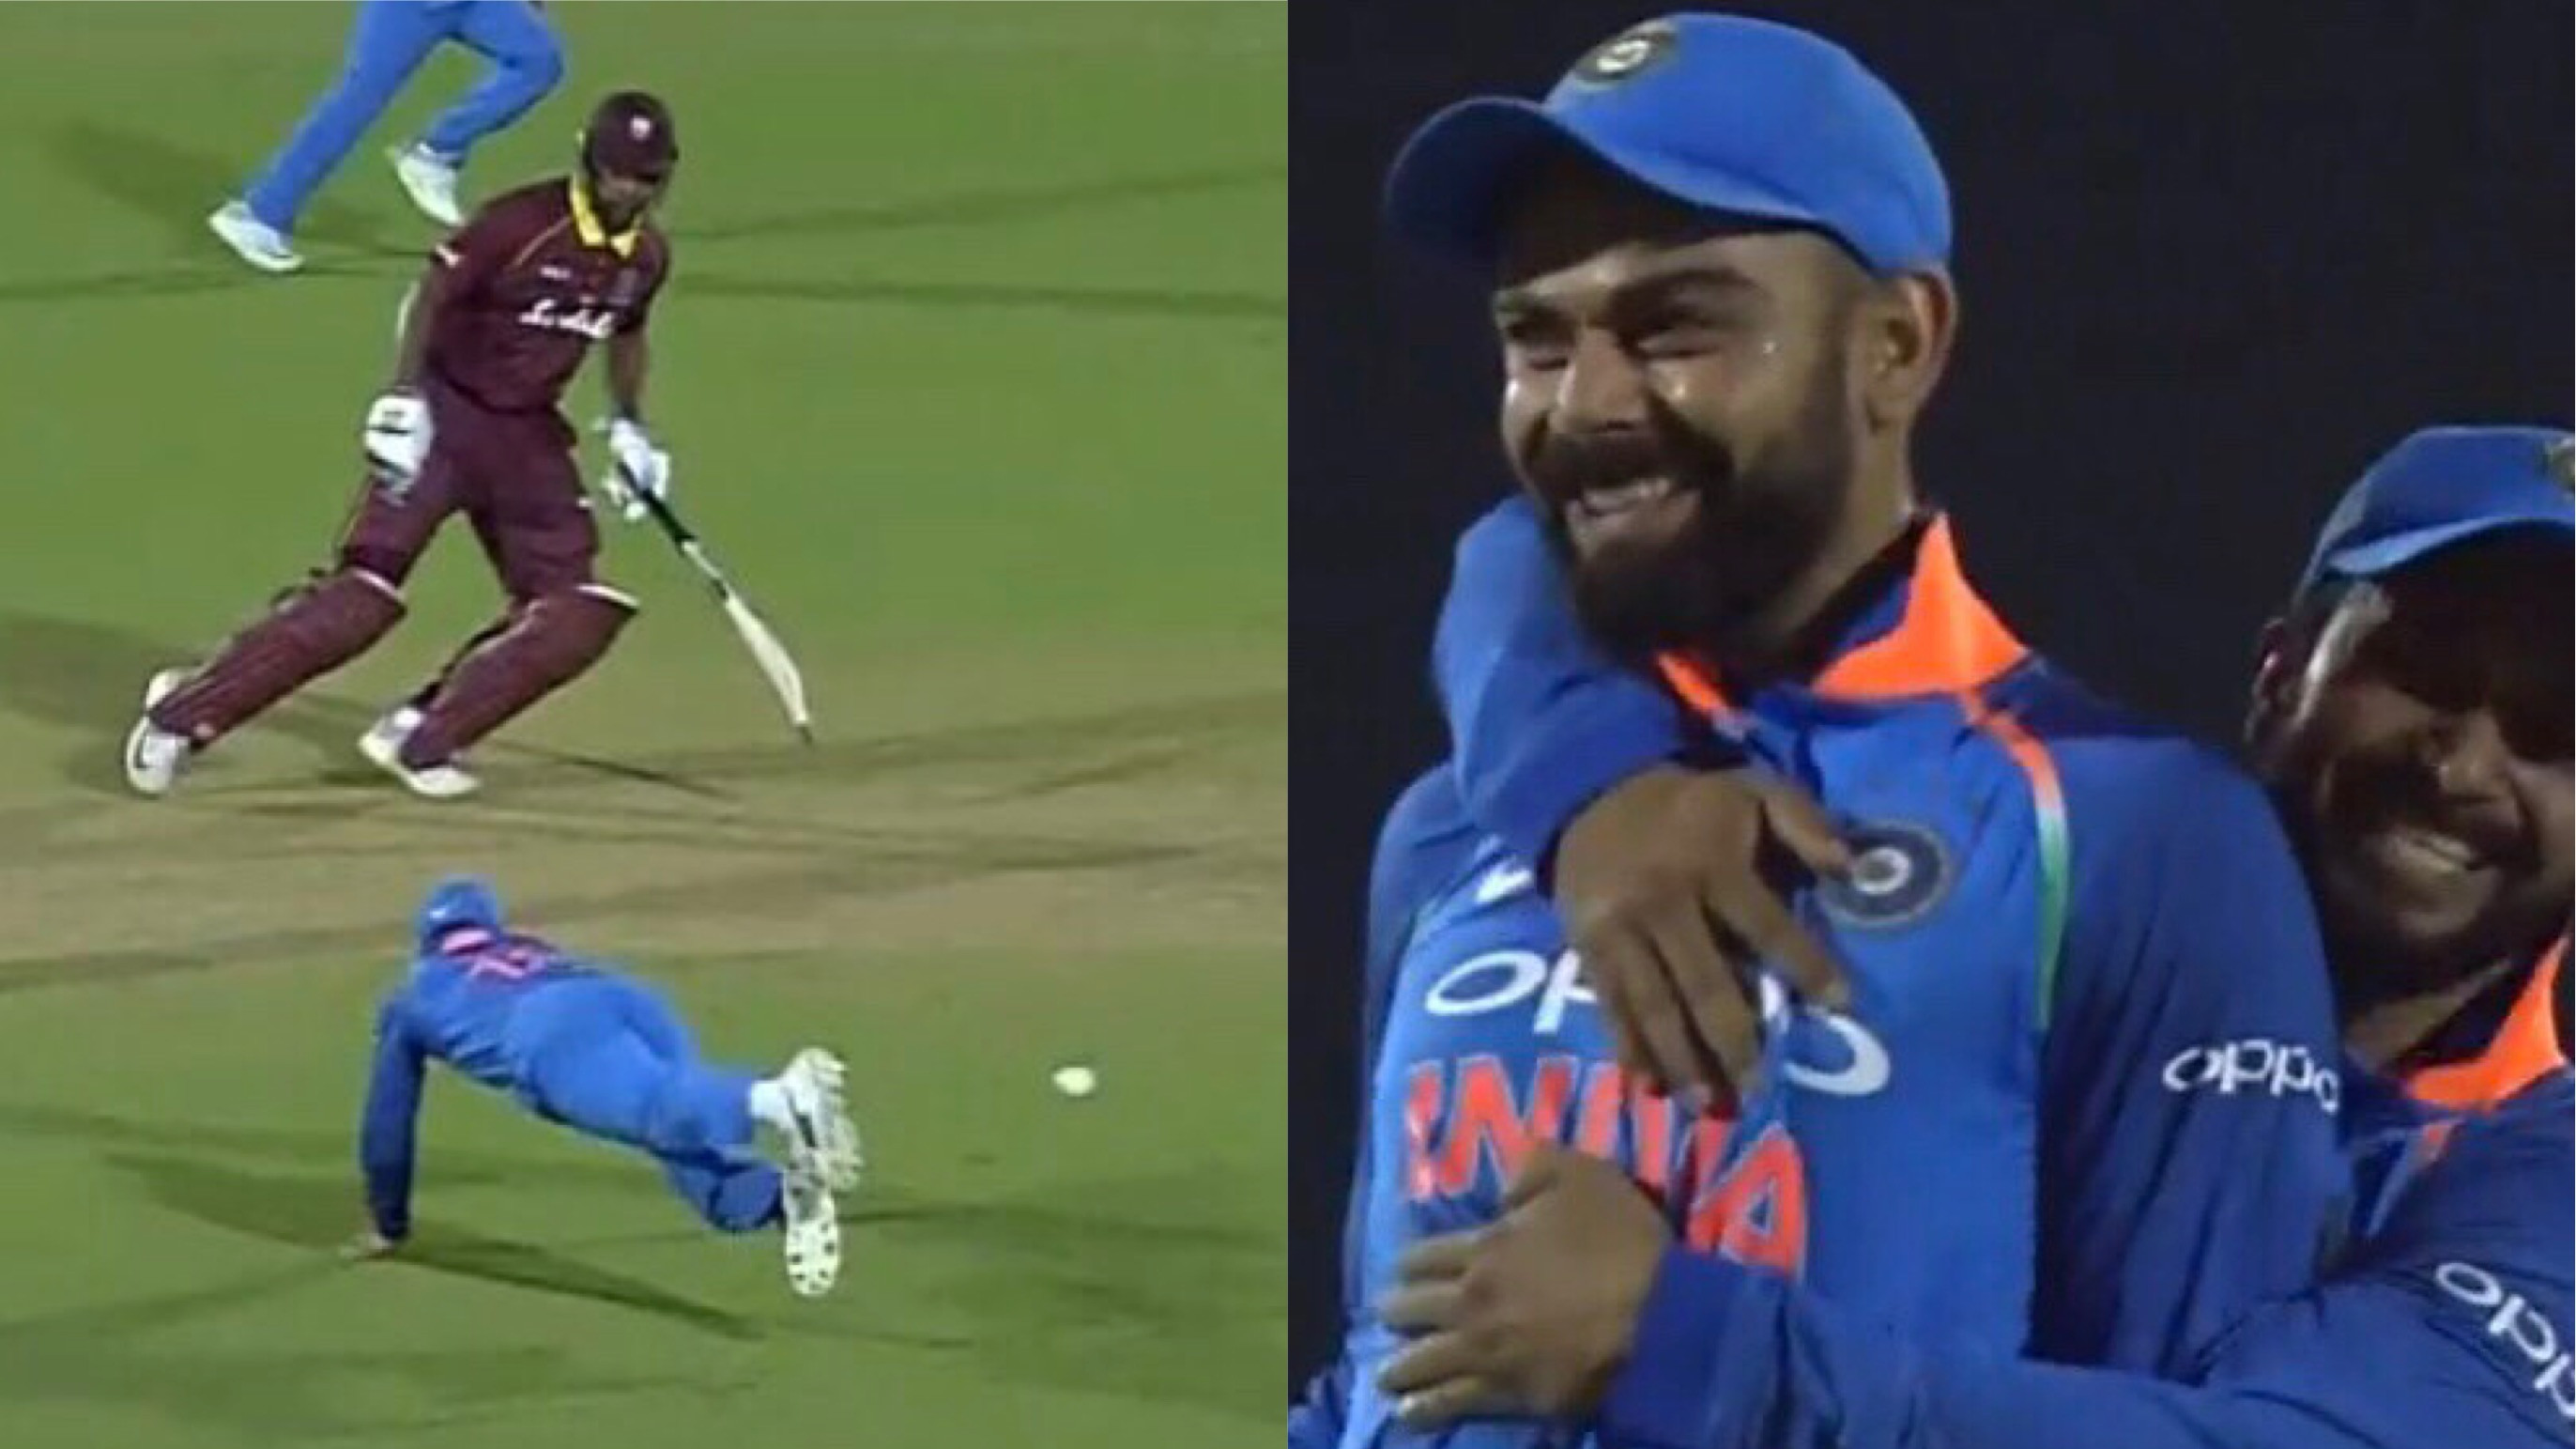 IND v WI 2018: Watch- Virat Kohli runs out Kieran Powell with a backhand flick